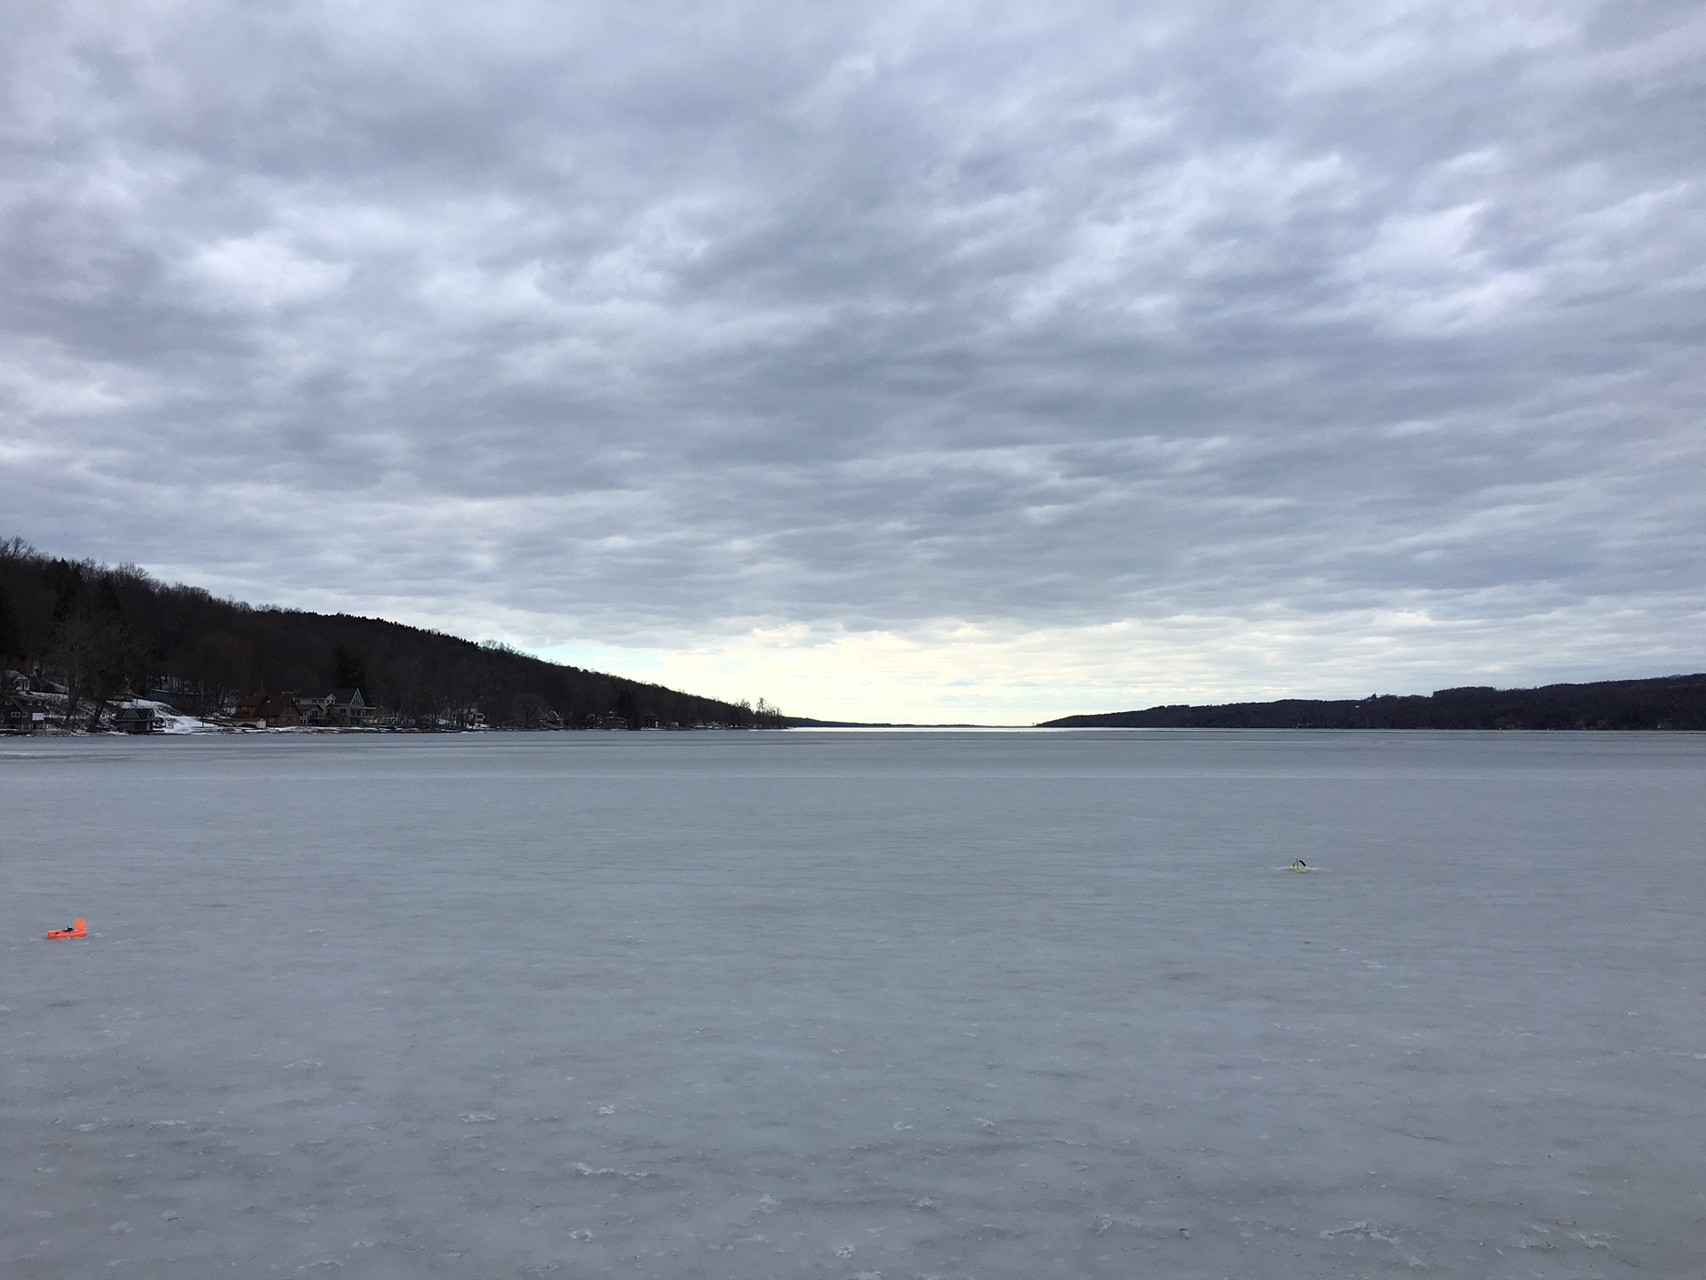 Owasco Lake, Feb. 20, 2016